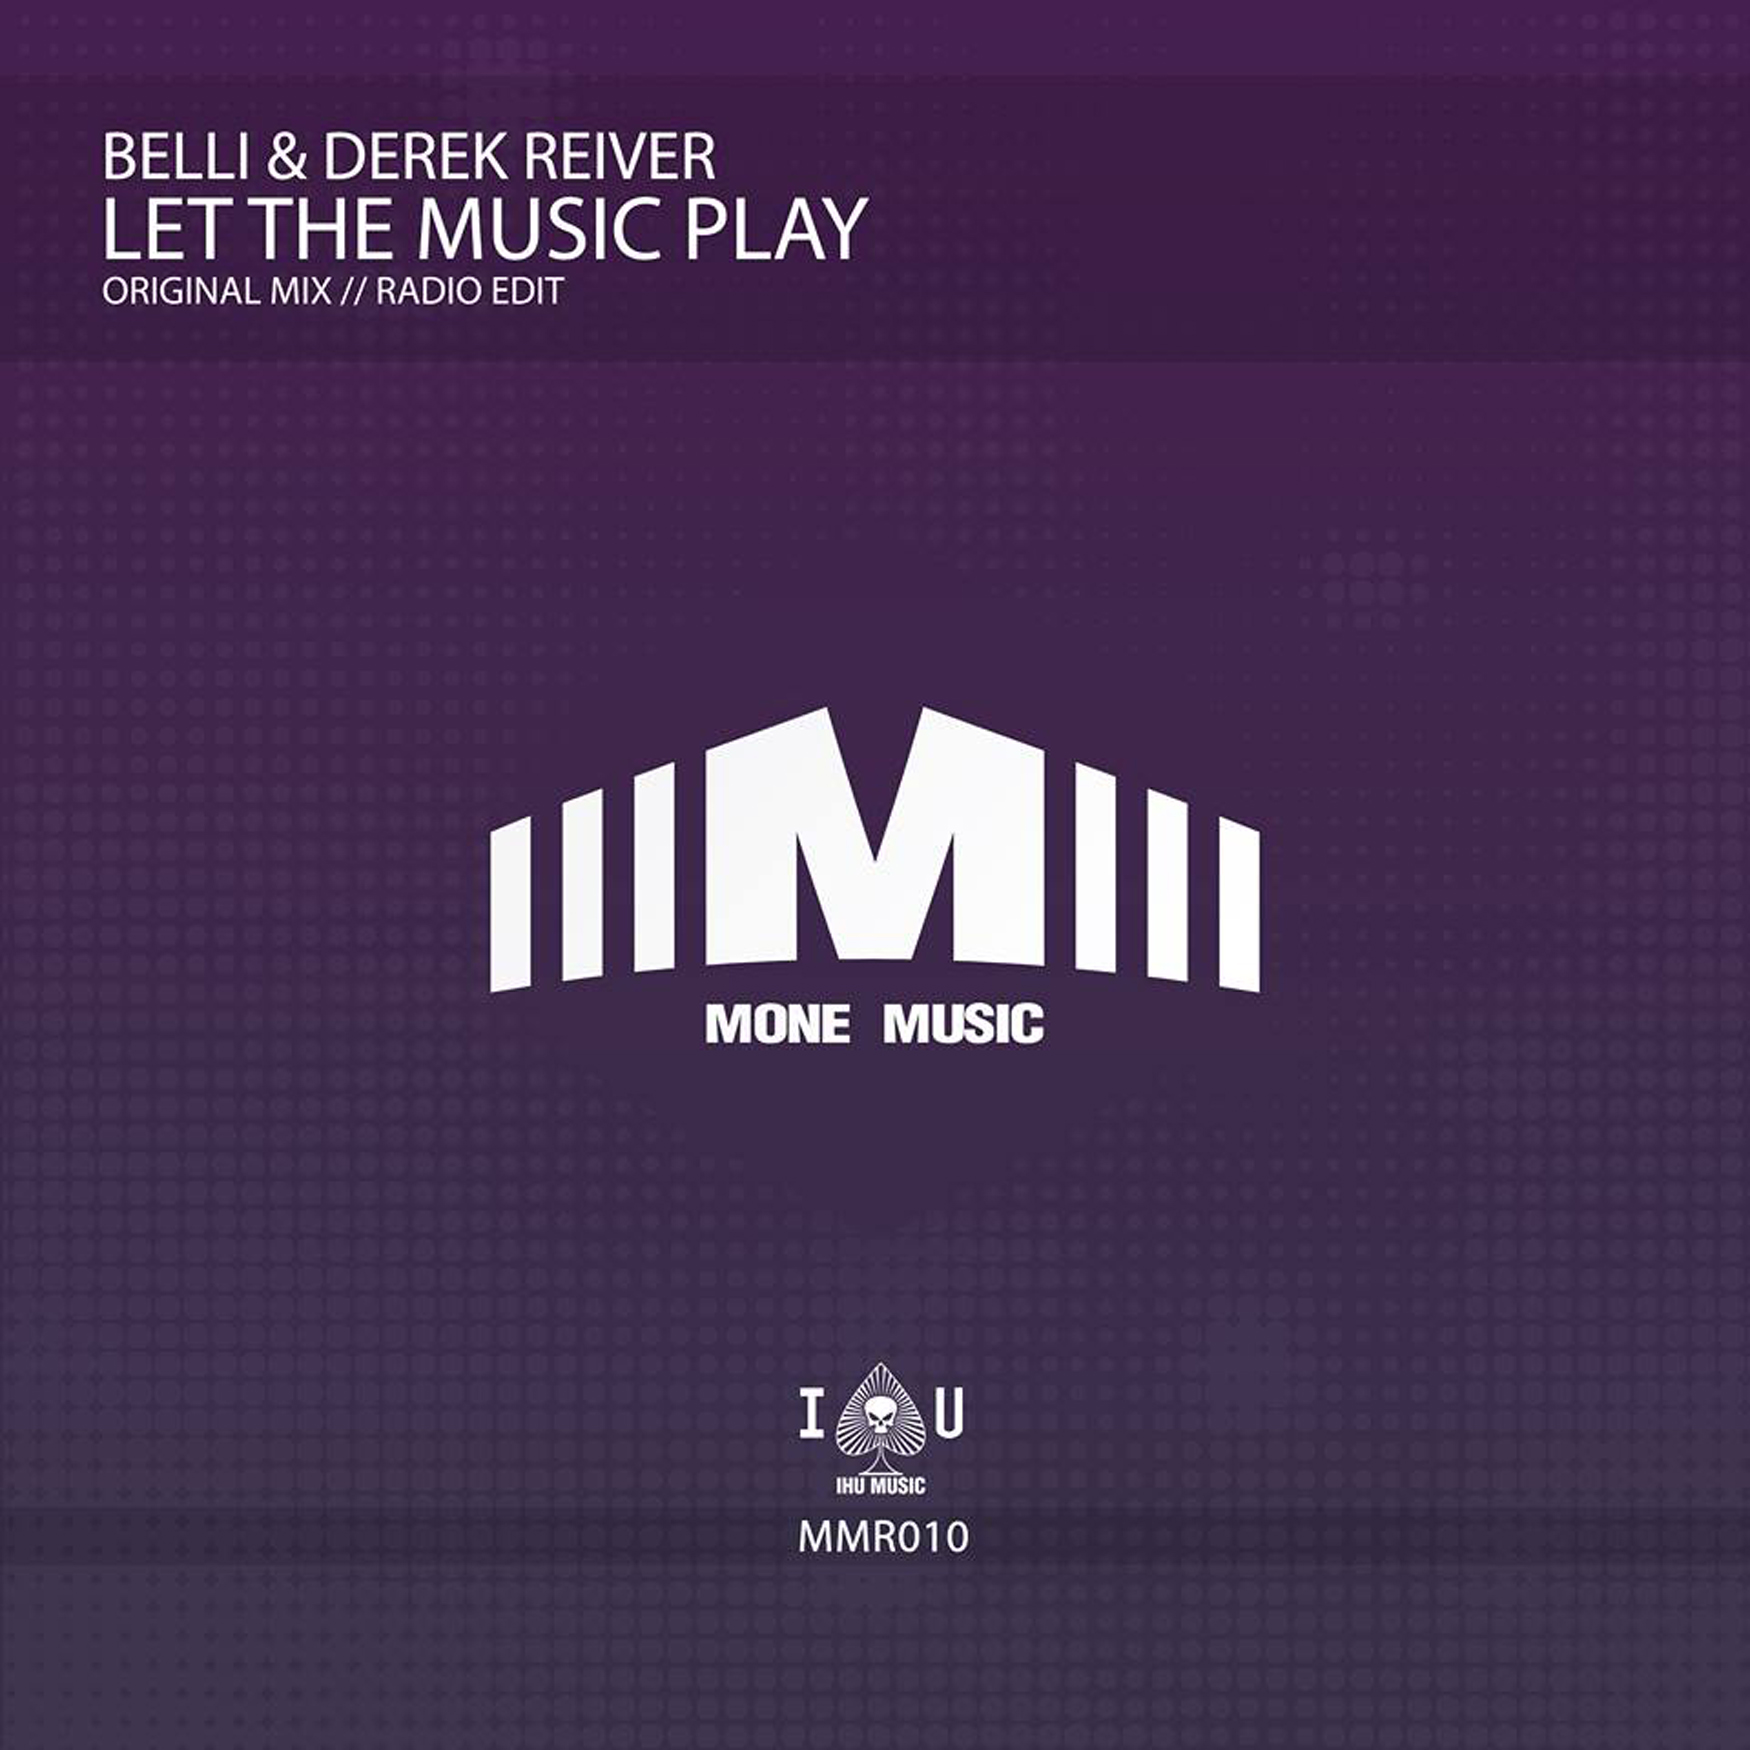 Belli & Derek Reiver - Let The Music Play